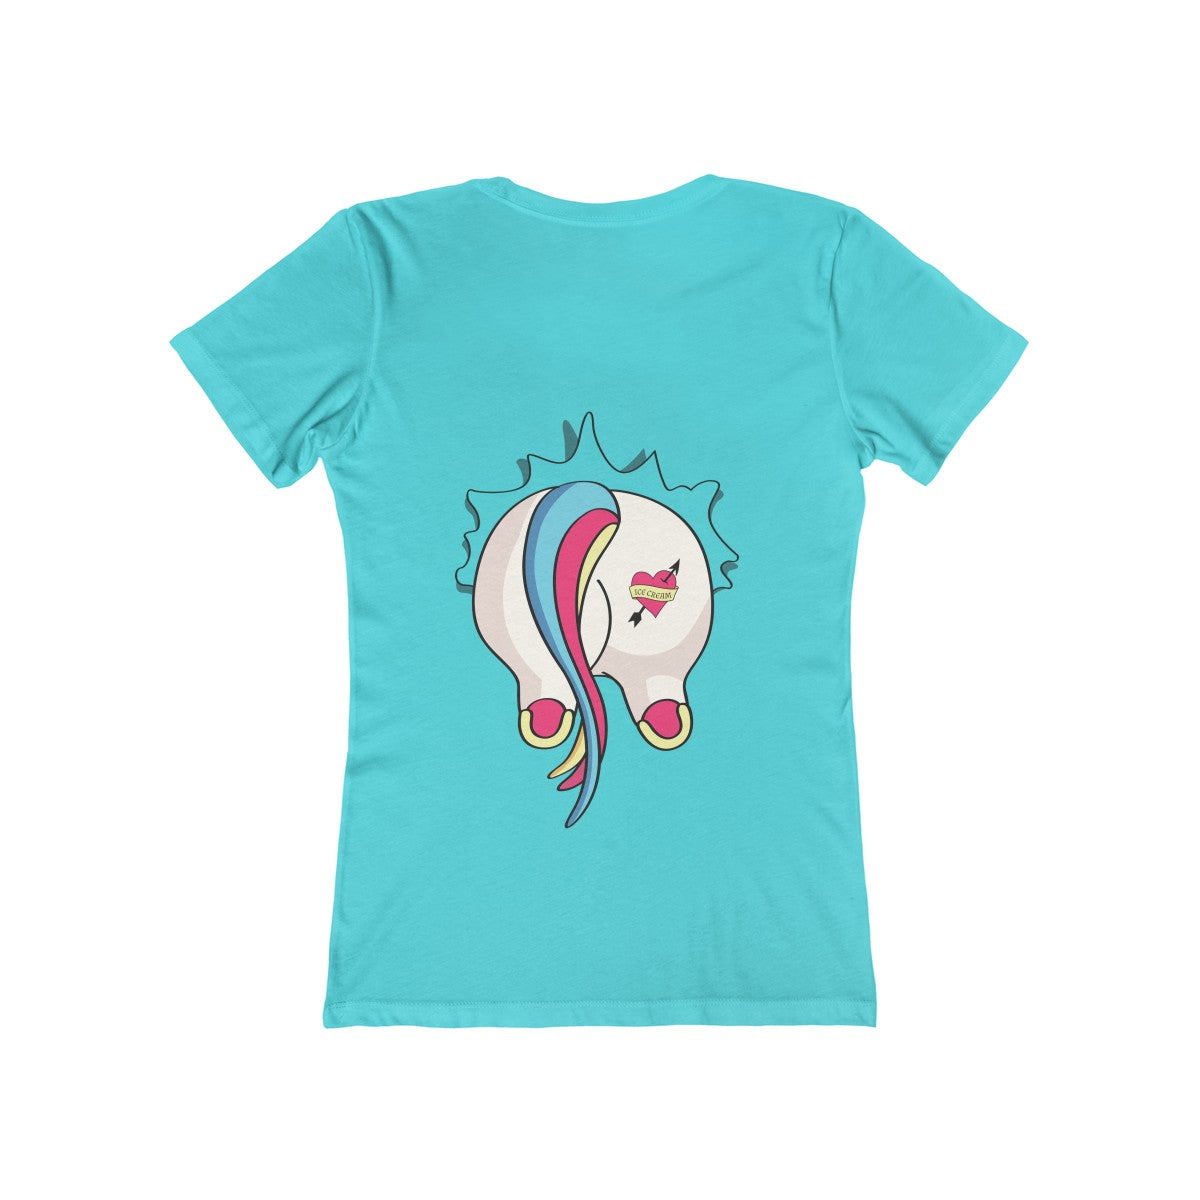 EXCLUSIVE DESIGN - Women's Free Your Inner Unicorn Tee (Censored ver.) - 70% OFF!